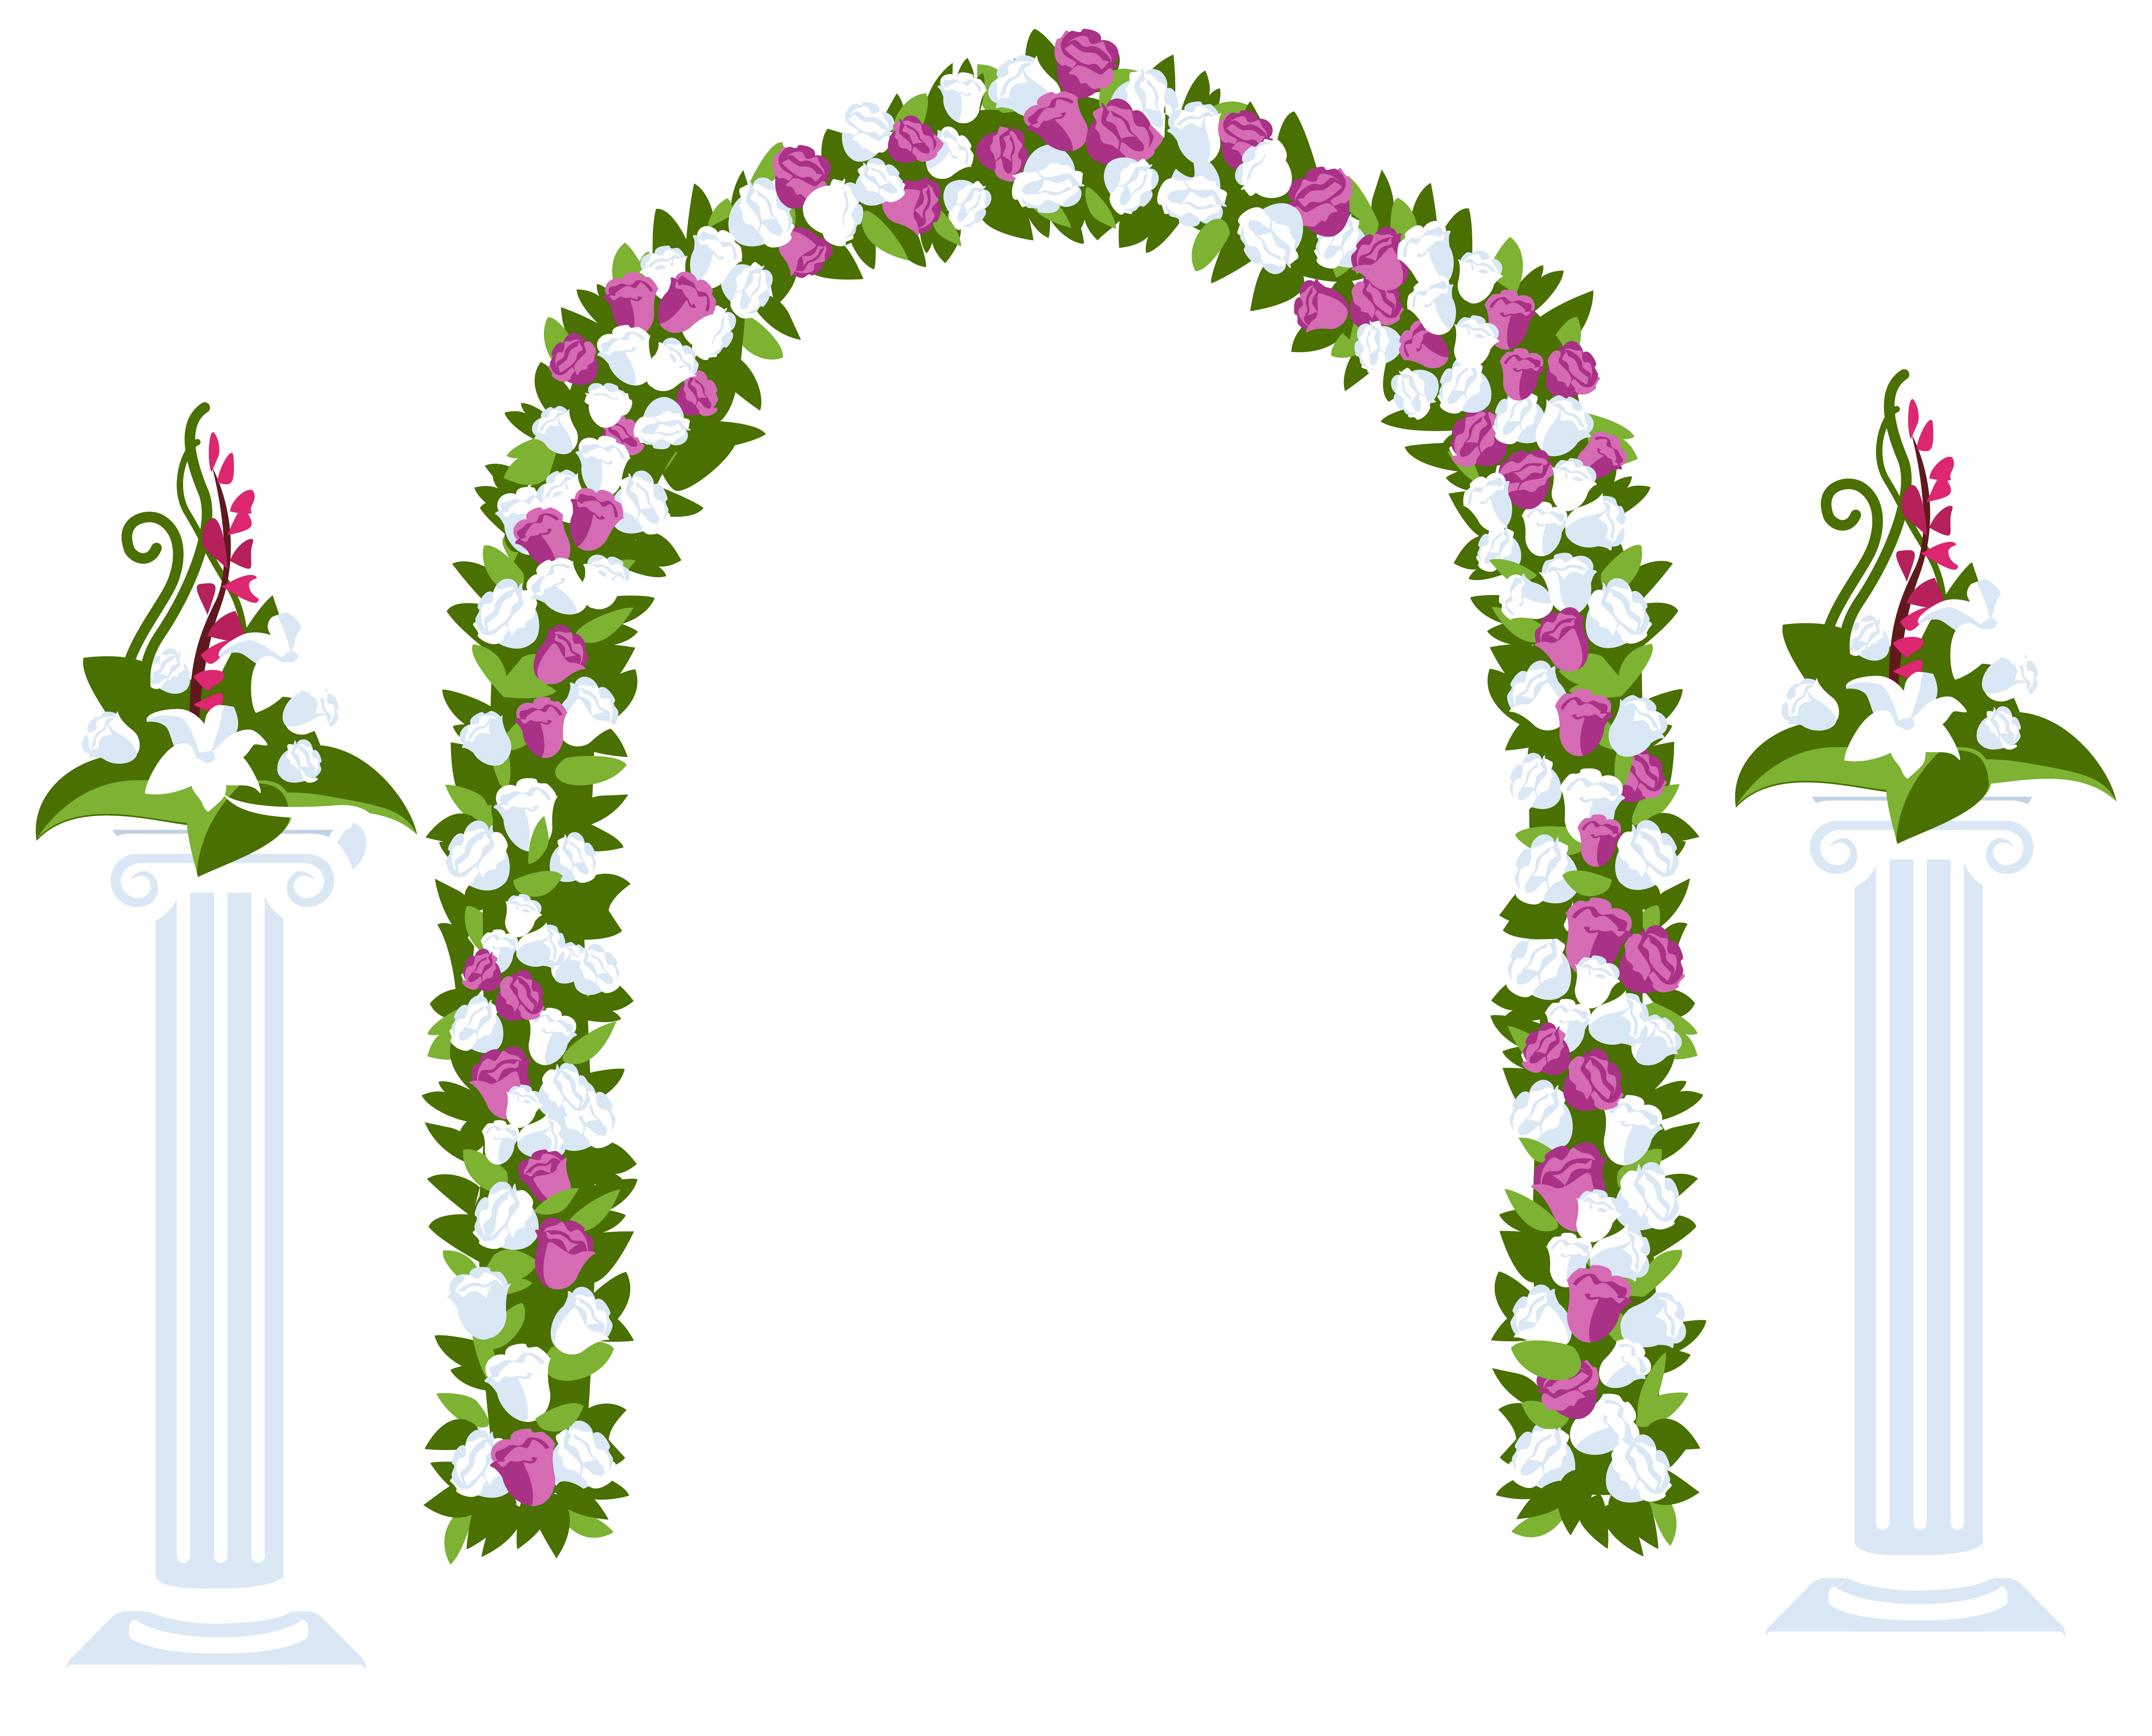 632 Arch free clipart.